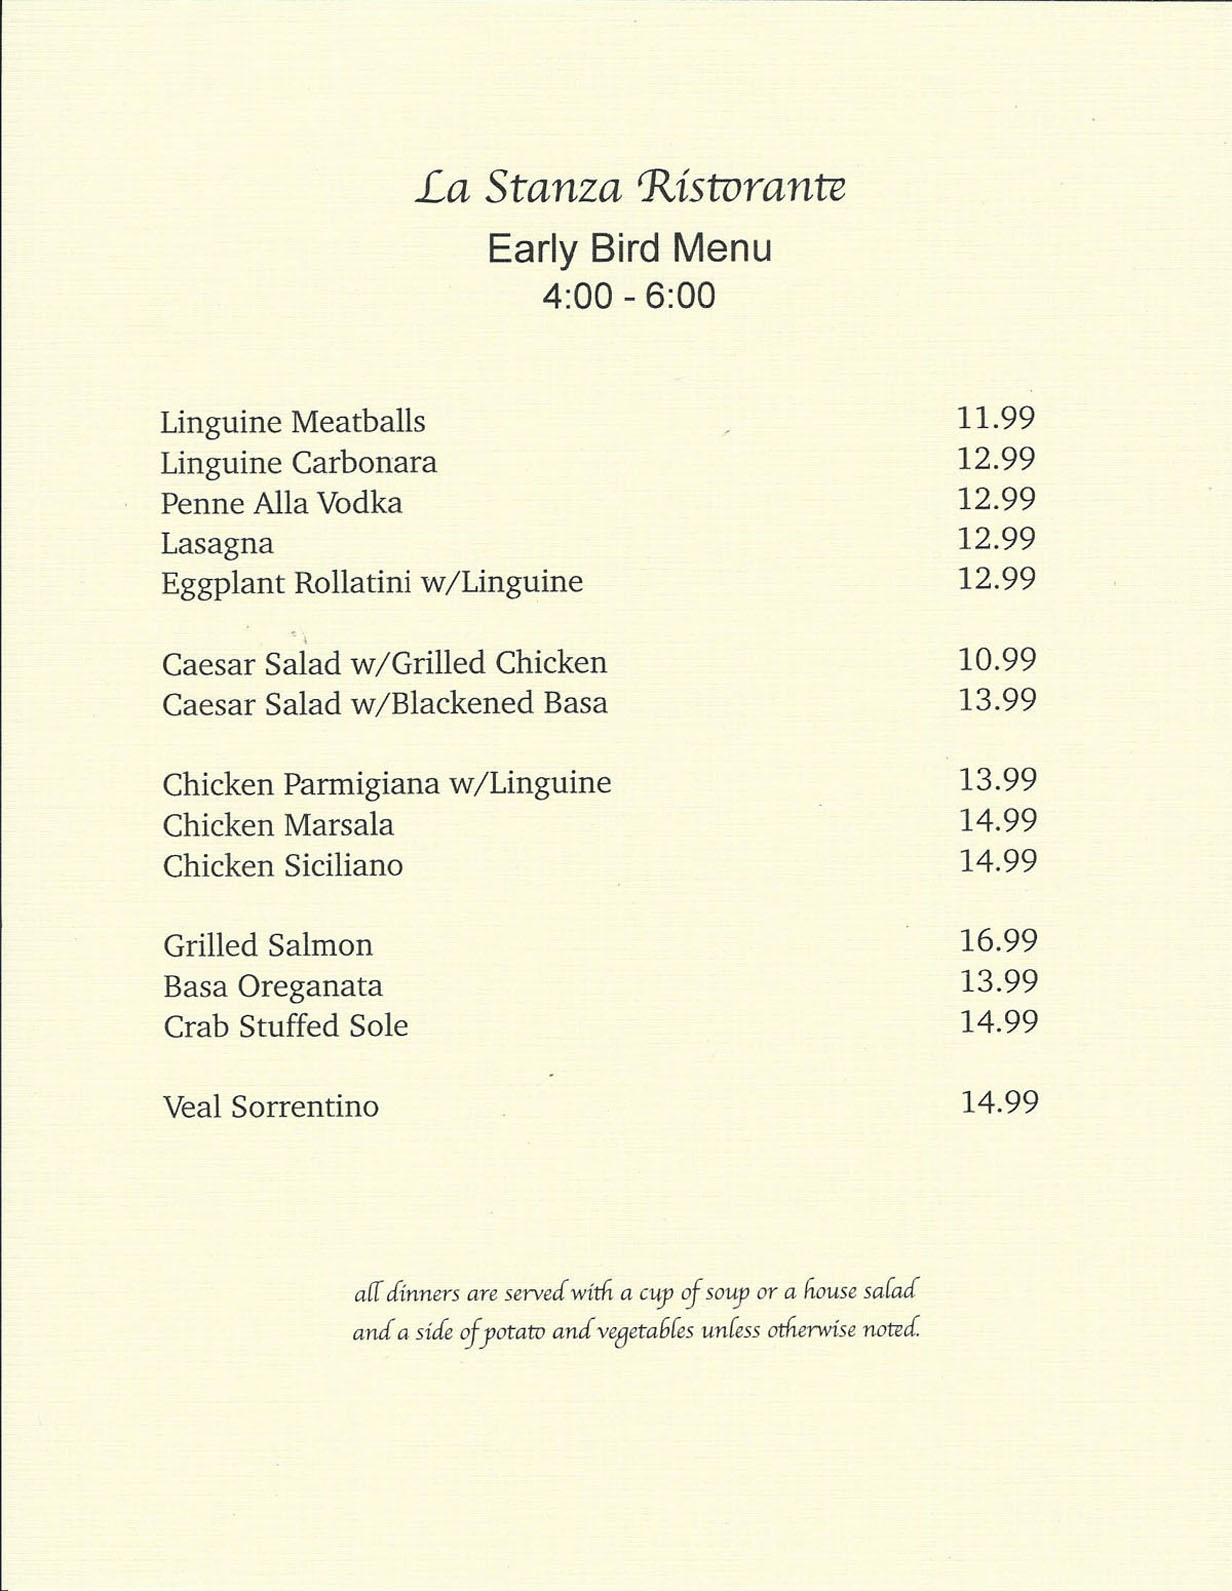 La Stanza's Early Bird Menu